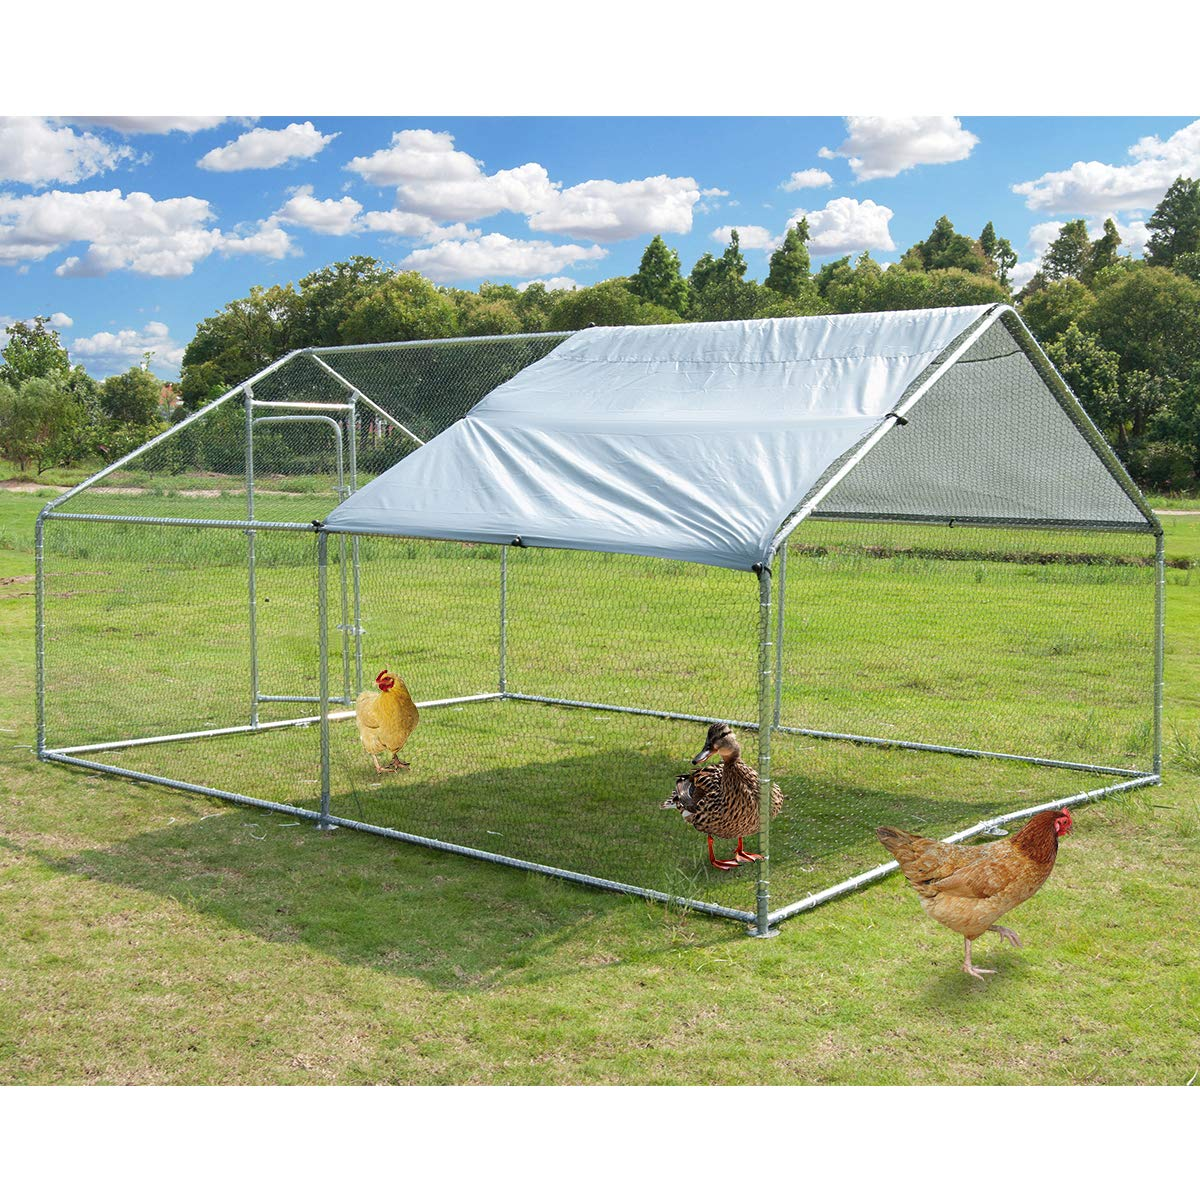 Large Metal Chicken Coop Walk-in Poultry Cage Hen Run House Rabbits Habitat Cage Spire Shaped Coop with Waterproof and Anti-Ultraviolet Cover for Outdoor Backyard Farm Use (10' L x 13' W x 6.4' H) by Polar Aurora